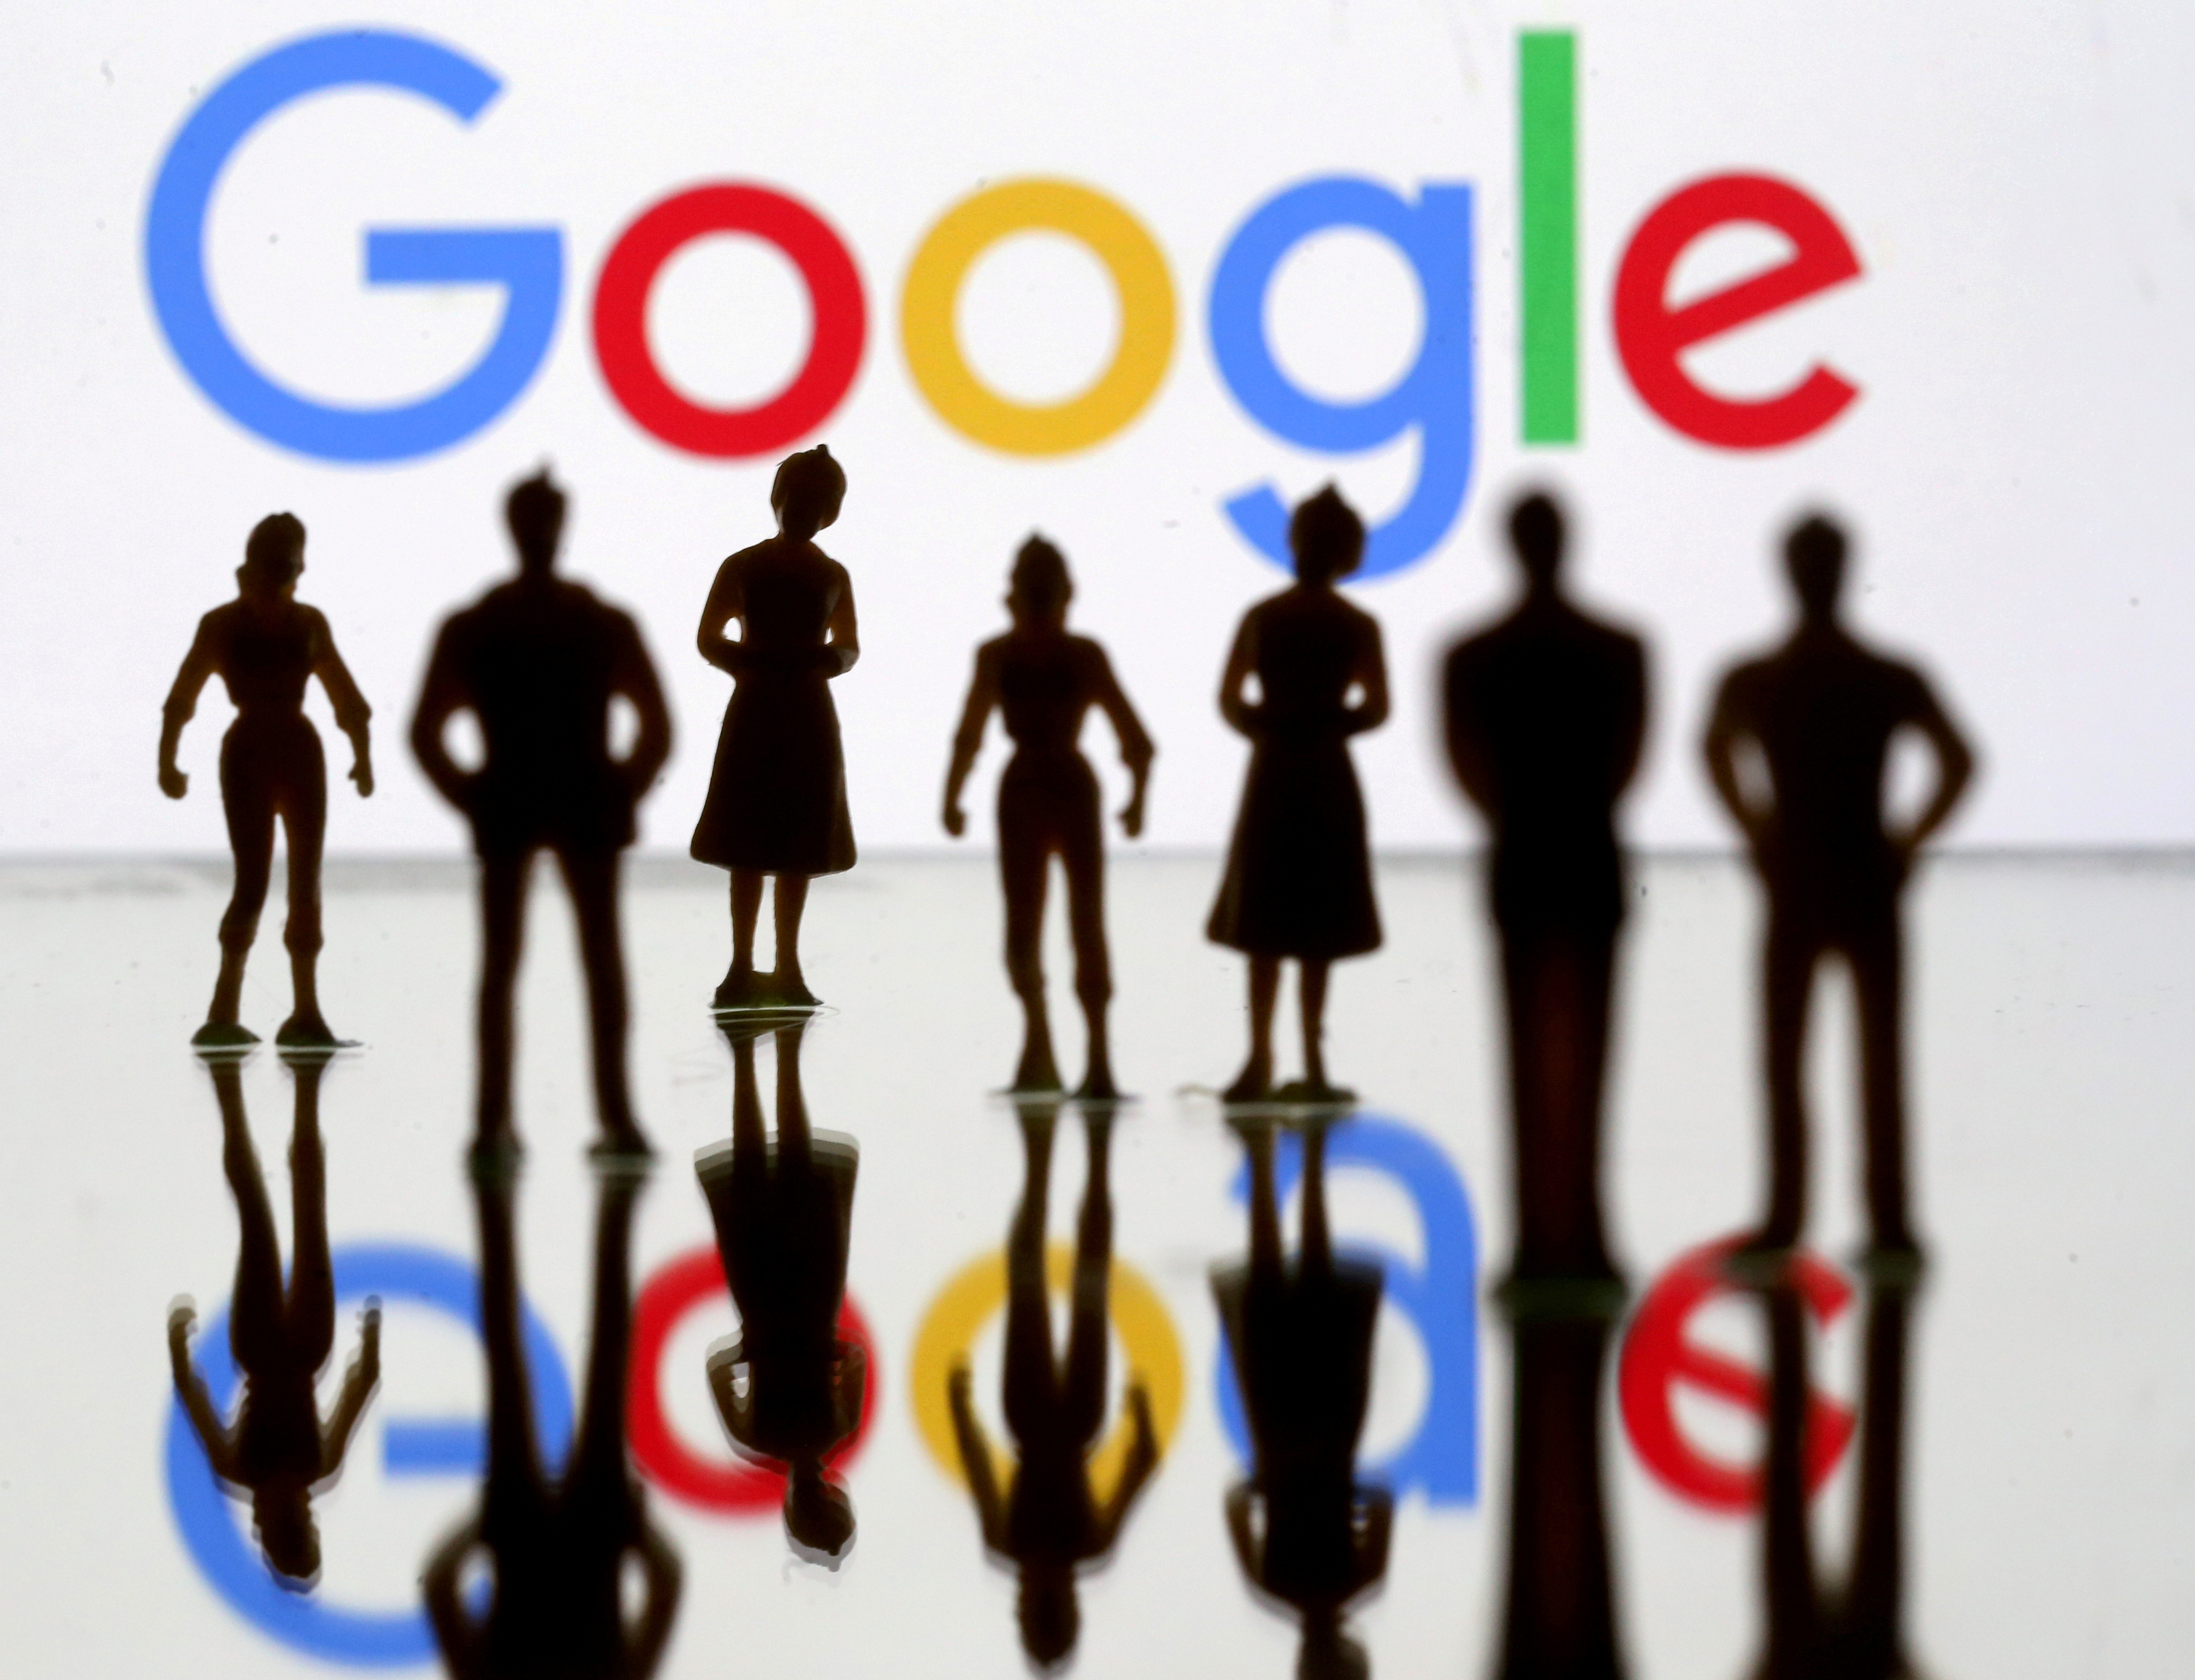 Small toy figures are seen in front of Google logo in this illustration picture, April 8, 2019. REUTERS/Dado Ruvic/File Photo